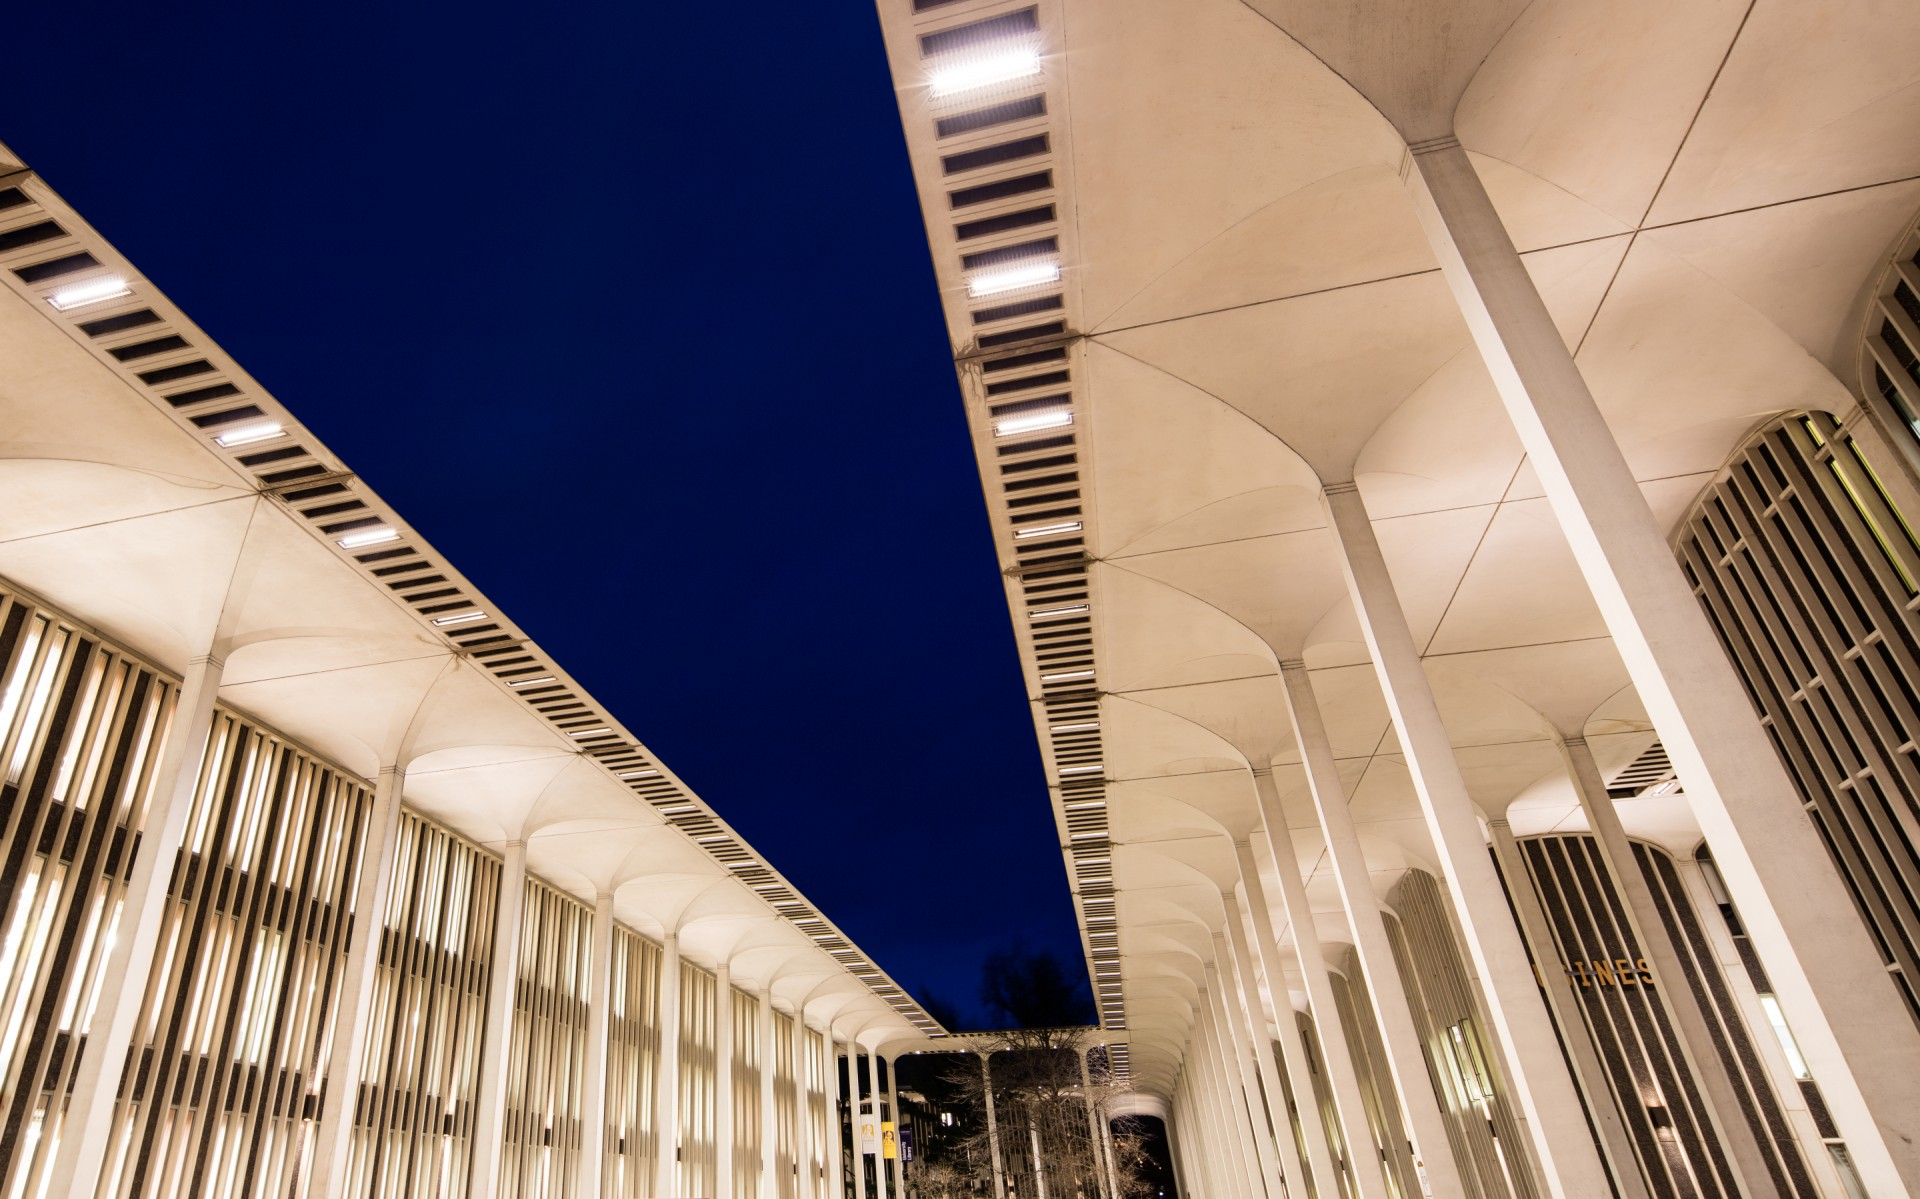 Lighting Dynamic developed a new lighting system that improves exterior light levels and reduces energy consumption.